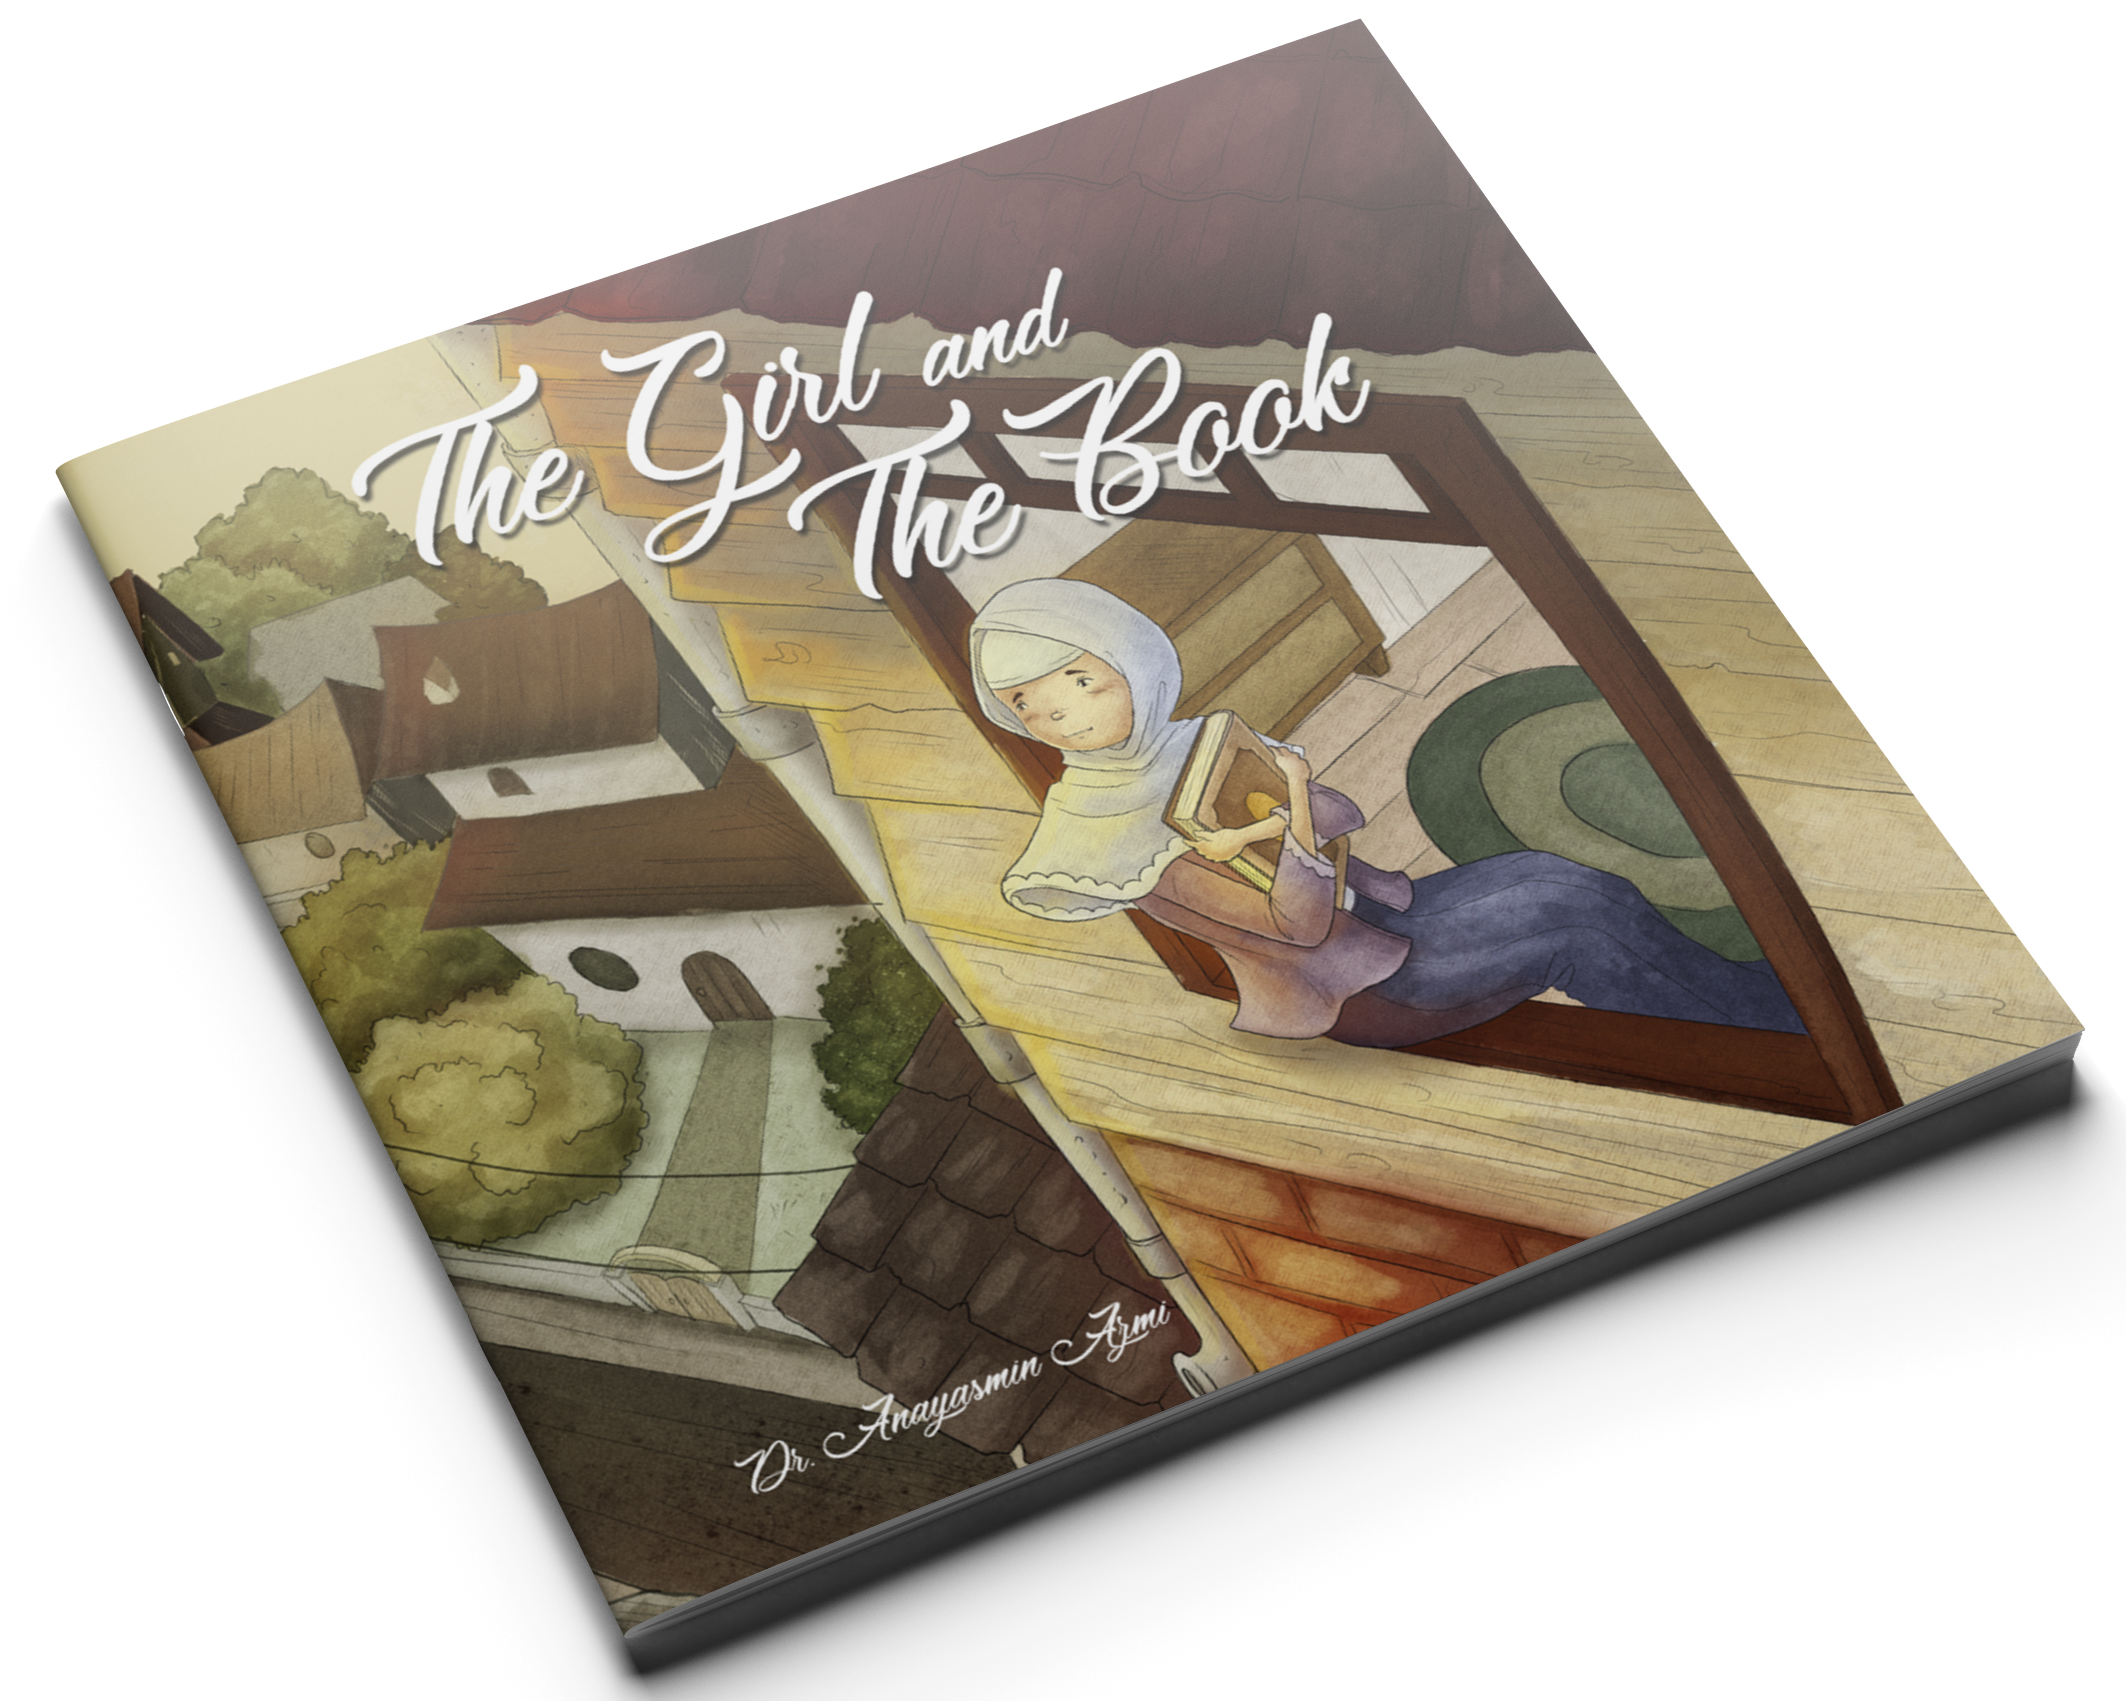 TGTB_Angle 45 - Cover Closed (1).png